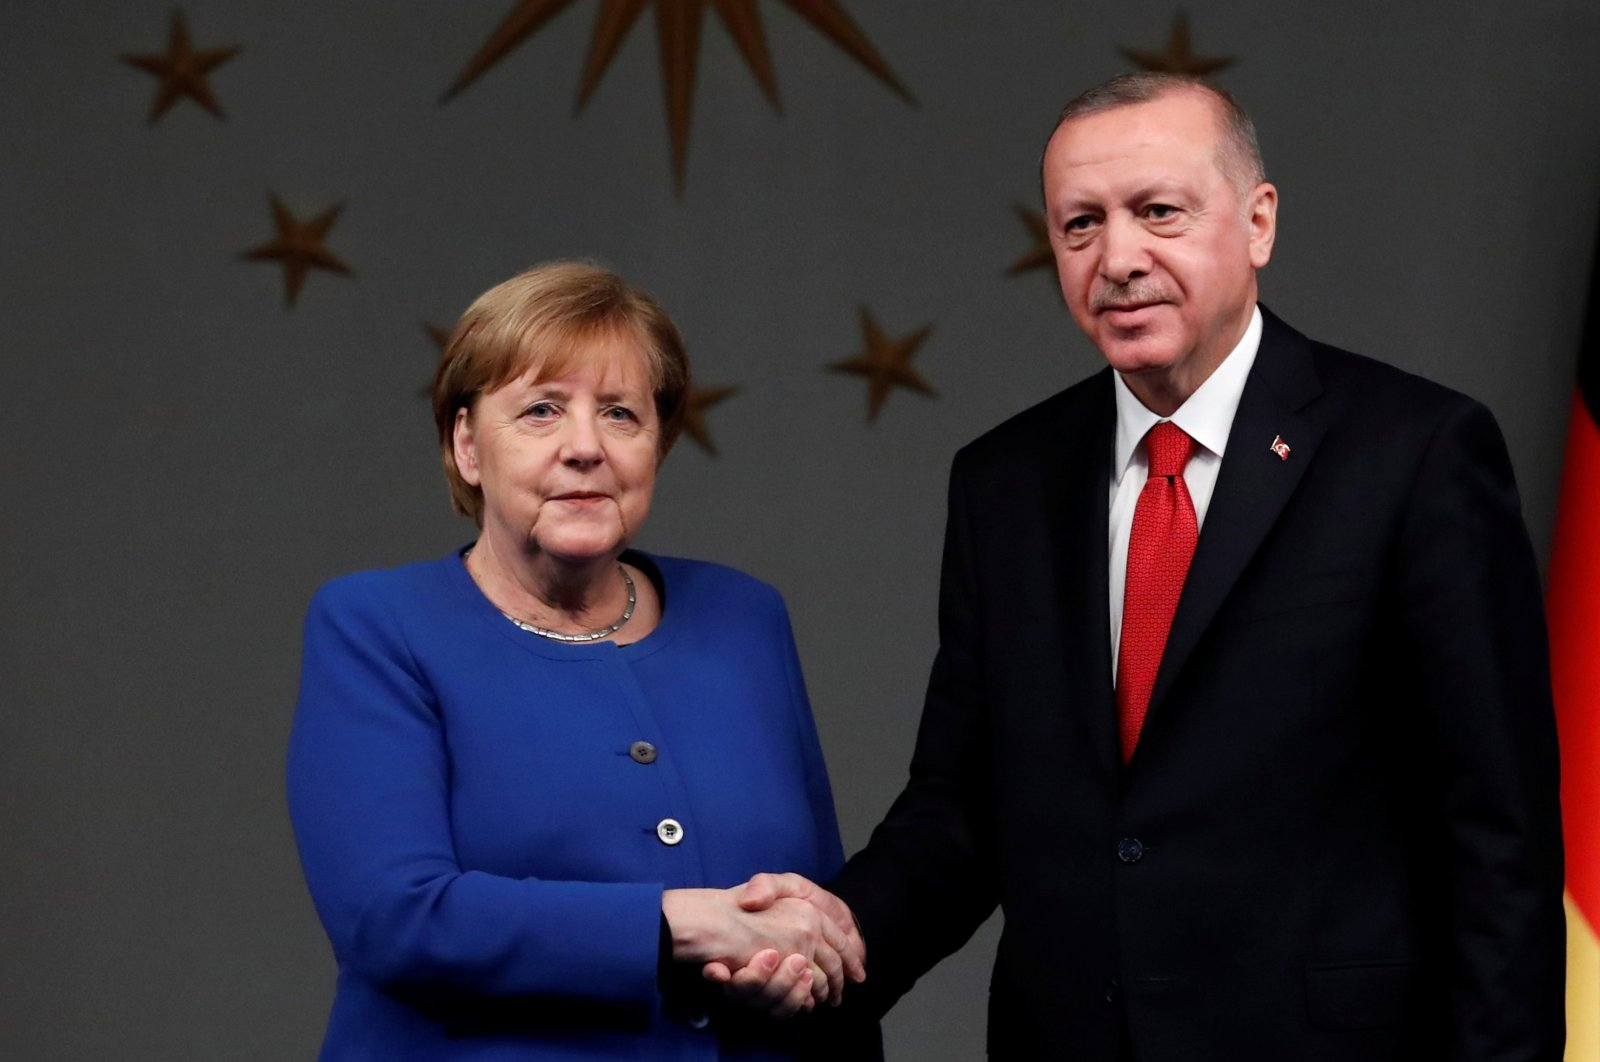 President Recep Tayyip Erdoğan (R) and German Chancellor Angela Merkel shake hands after a joint news conference in Istanbul, Turkey, Jan. 24, 2020. (Reuters Photo)